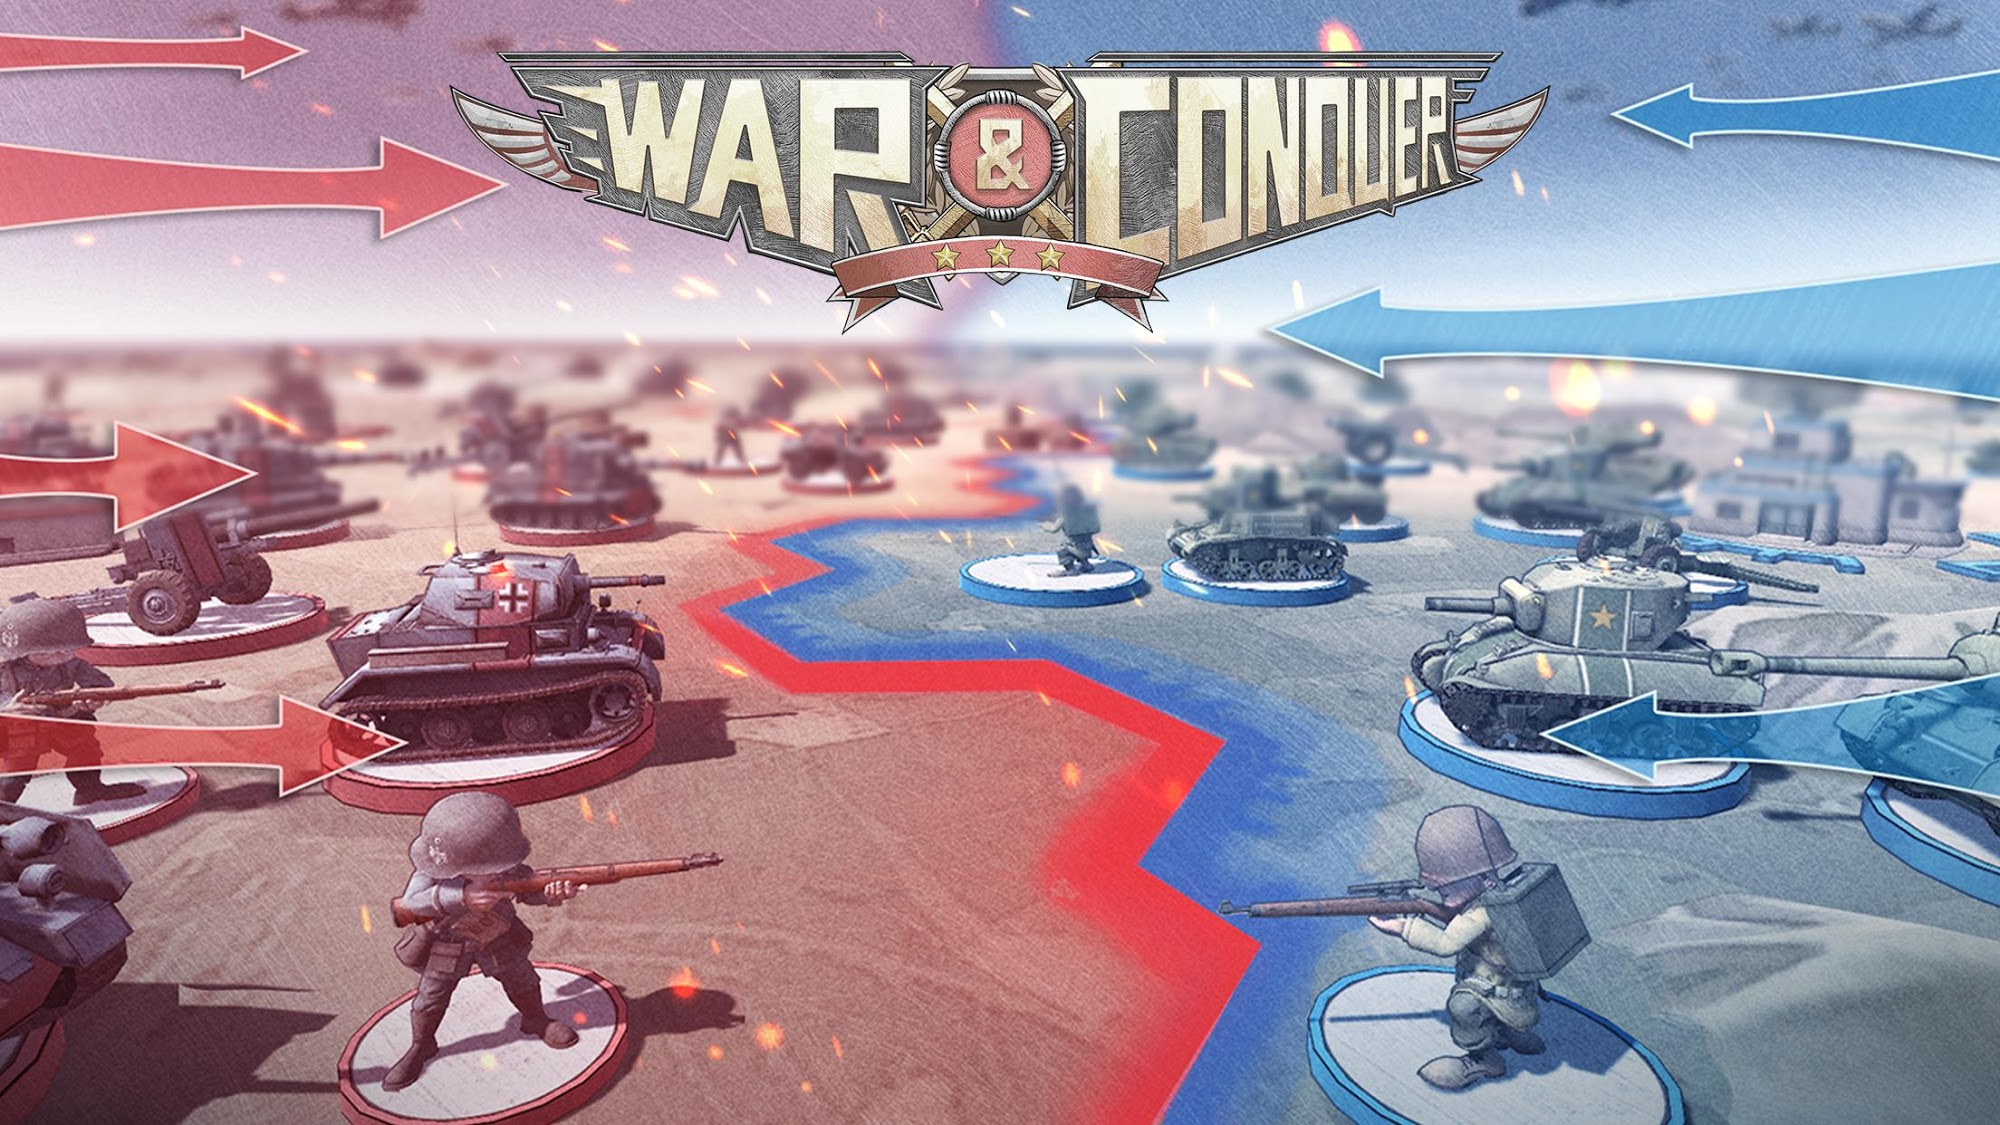 War & Conquer screenshot 1